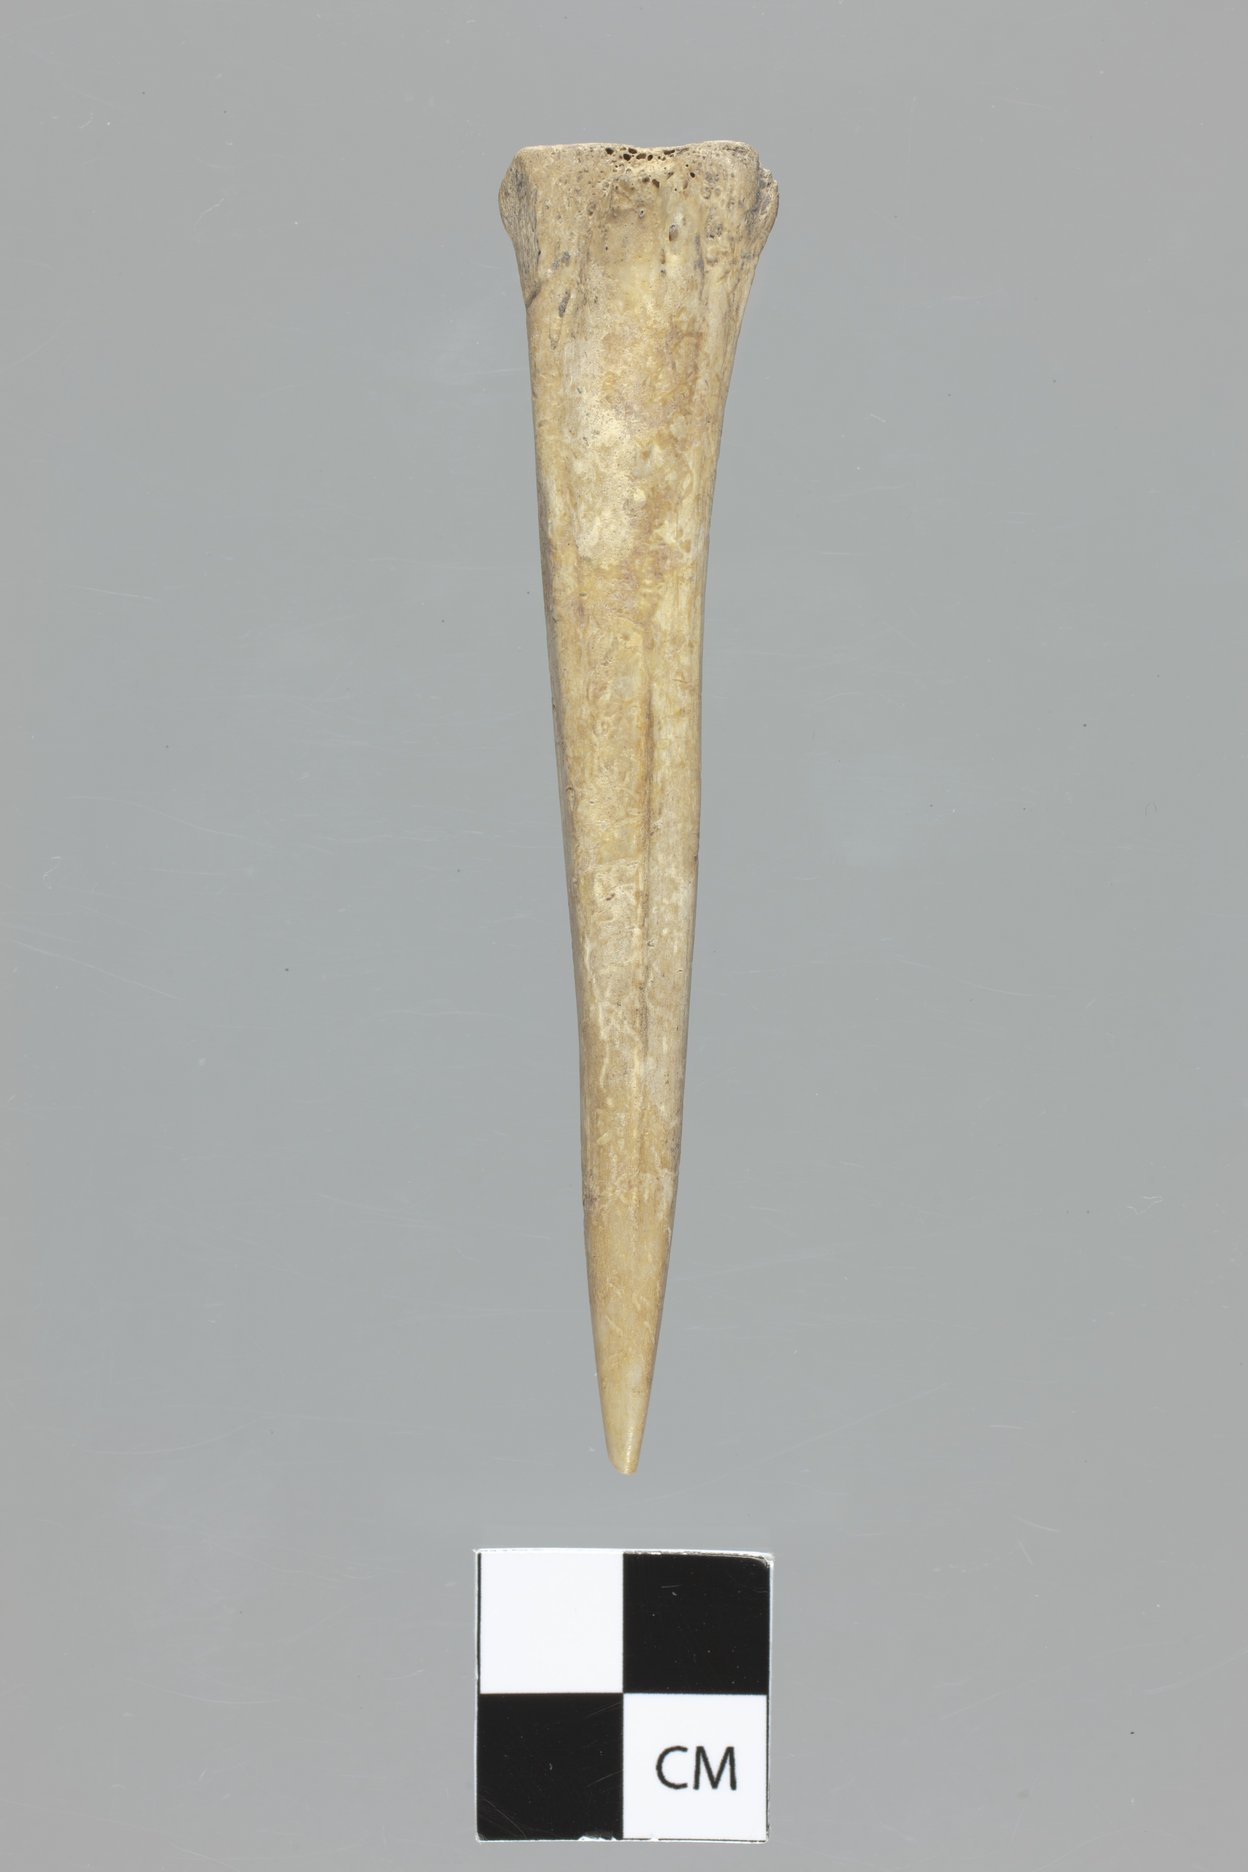 Bone Awl from the Lundeen Site, 14MD306 - 4